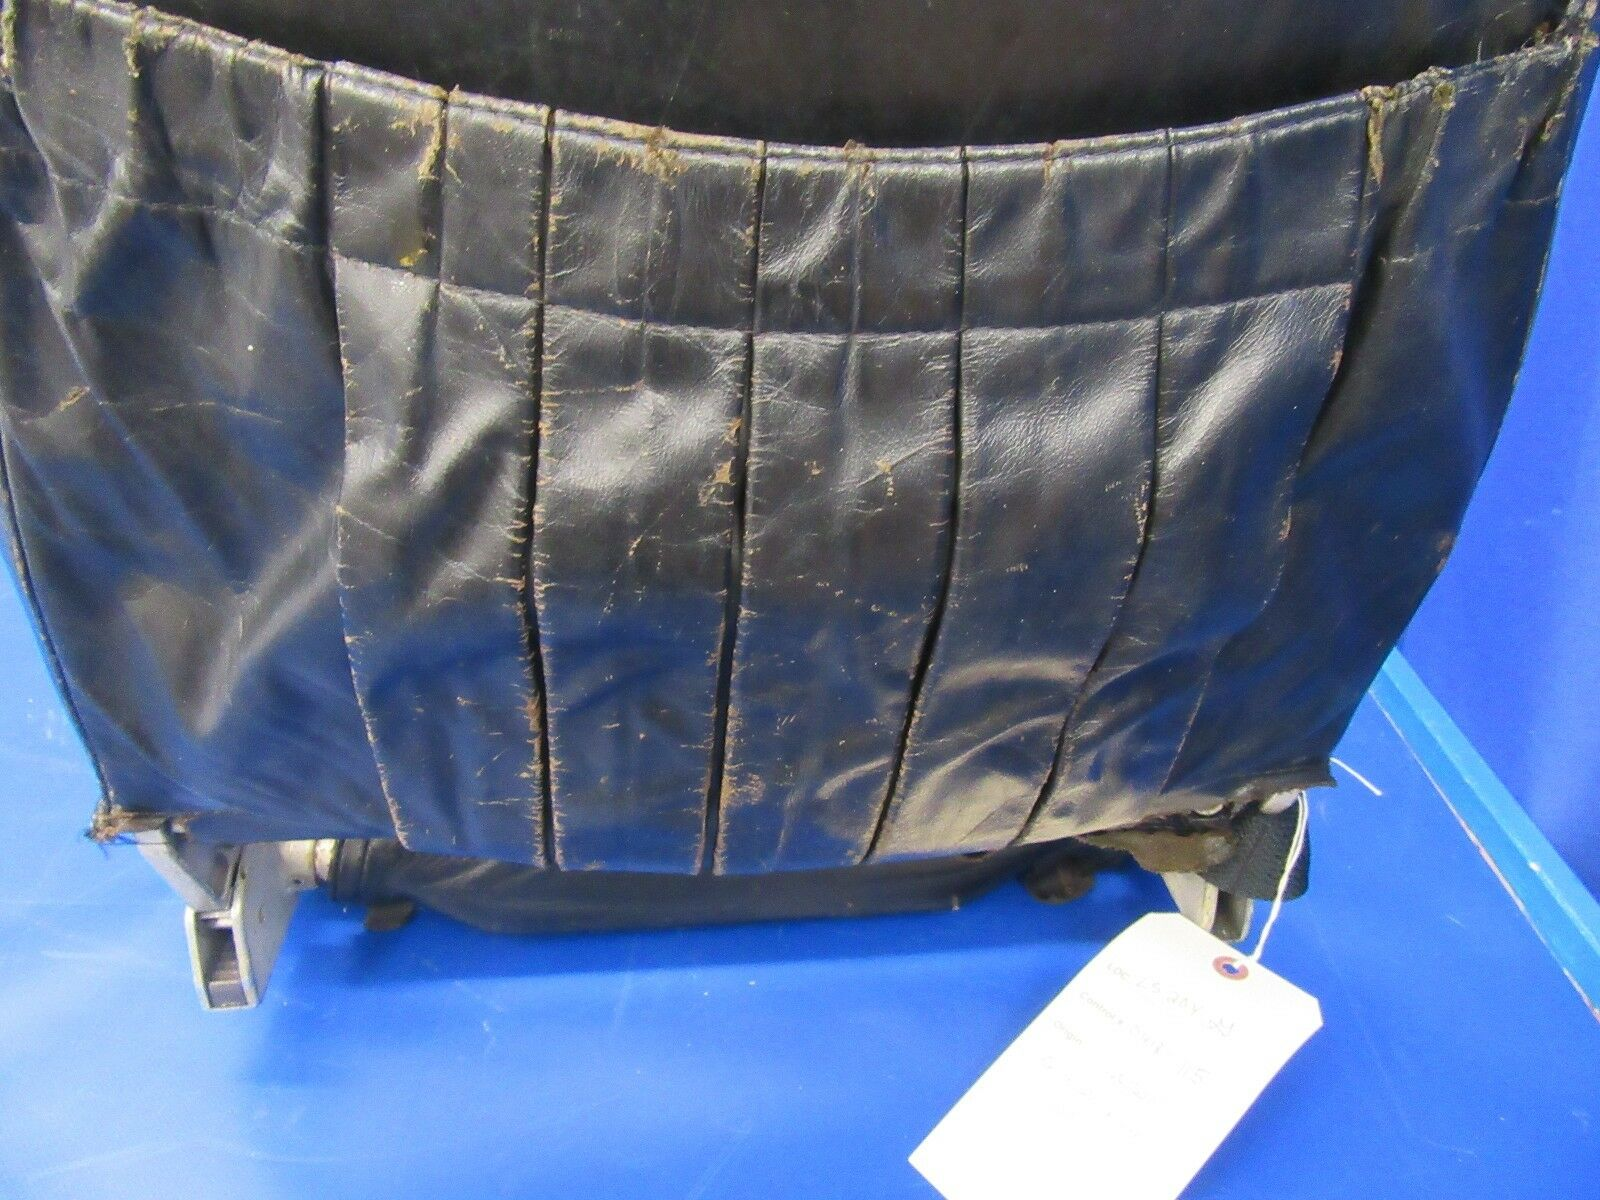 Beech Baron D55 Co-Pilot Seat Fwd Facing Only 96-534072-3 P/n 96-534072-3 Only (0418-115) e9ea34